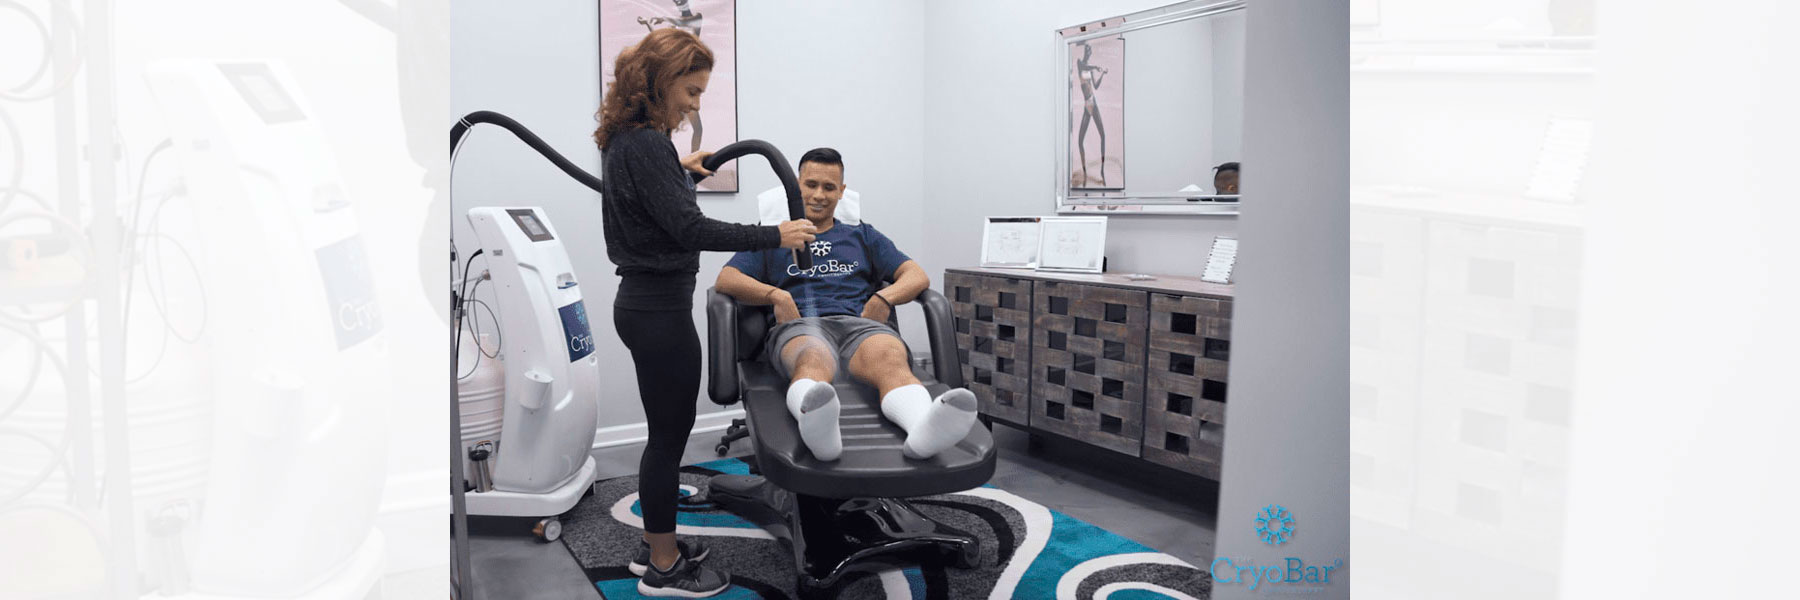 Localized Cryotherapy Chicago